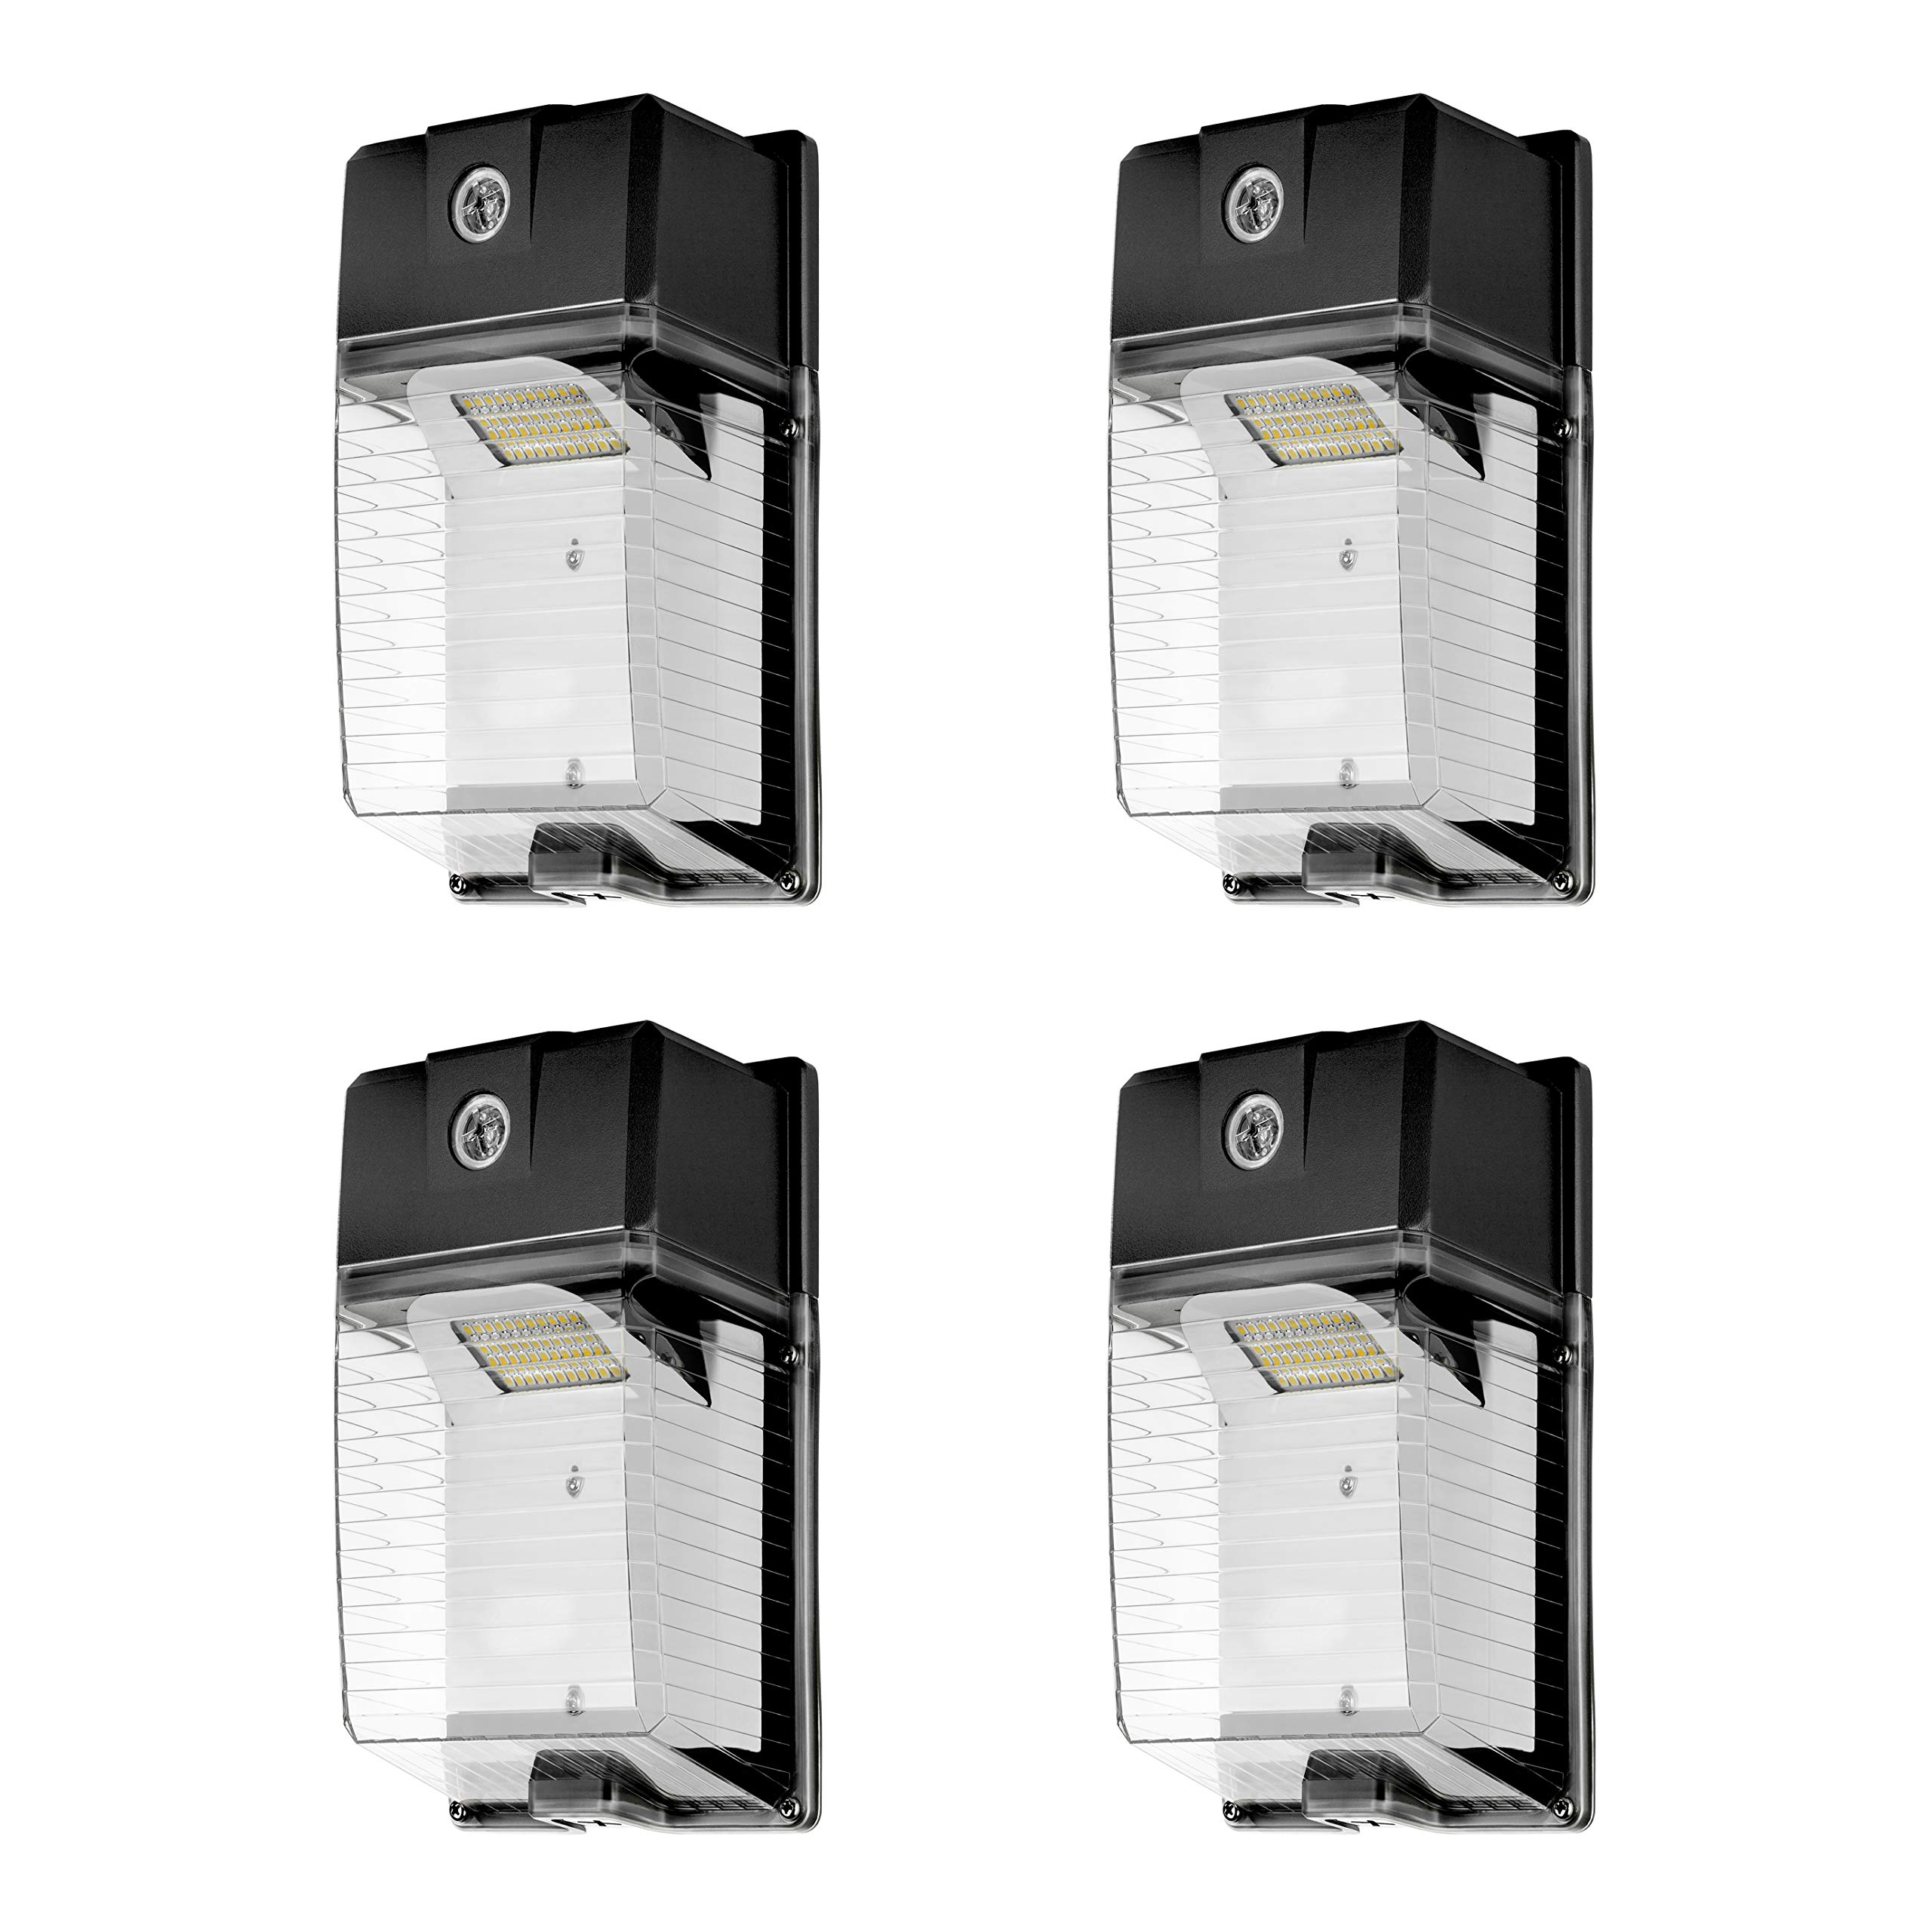 Hyperikon 30W LED Wall Pack Outdoor Light Clear Cover Photocell Included, 5000K (Crystal White Glow), 150W HPS/HID Equivalent, 3300 Lumens, IP 66 Weatherproof Led Security Area Lighting, UL (4-Pack)